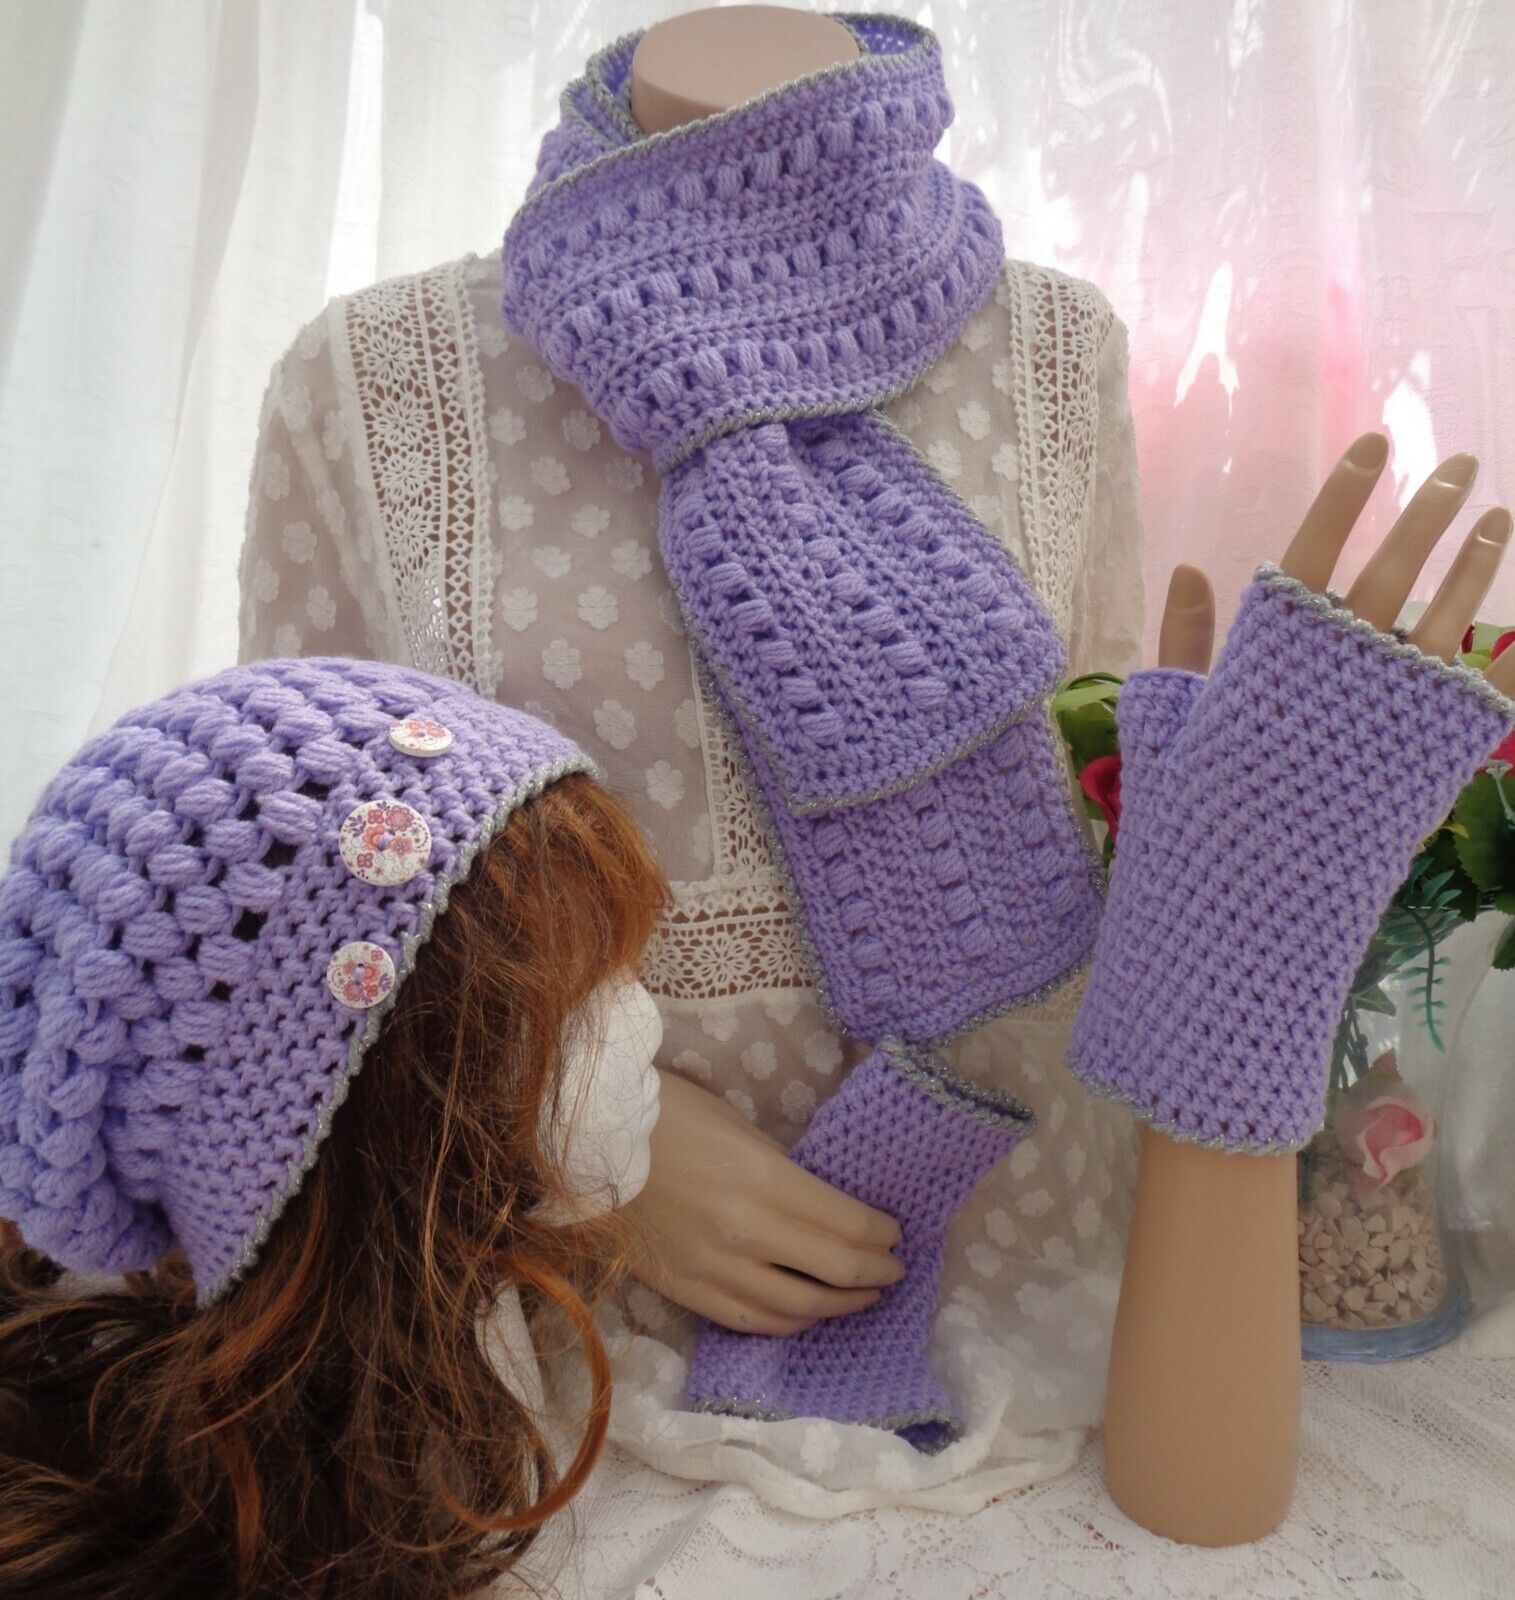 Handmade Crochet Ladies Hat Gloves and Scarf set - Ideal Gift - Lilac